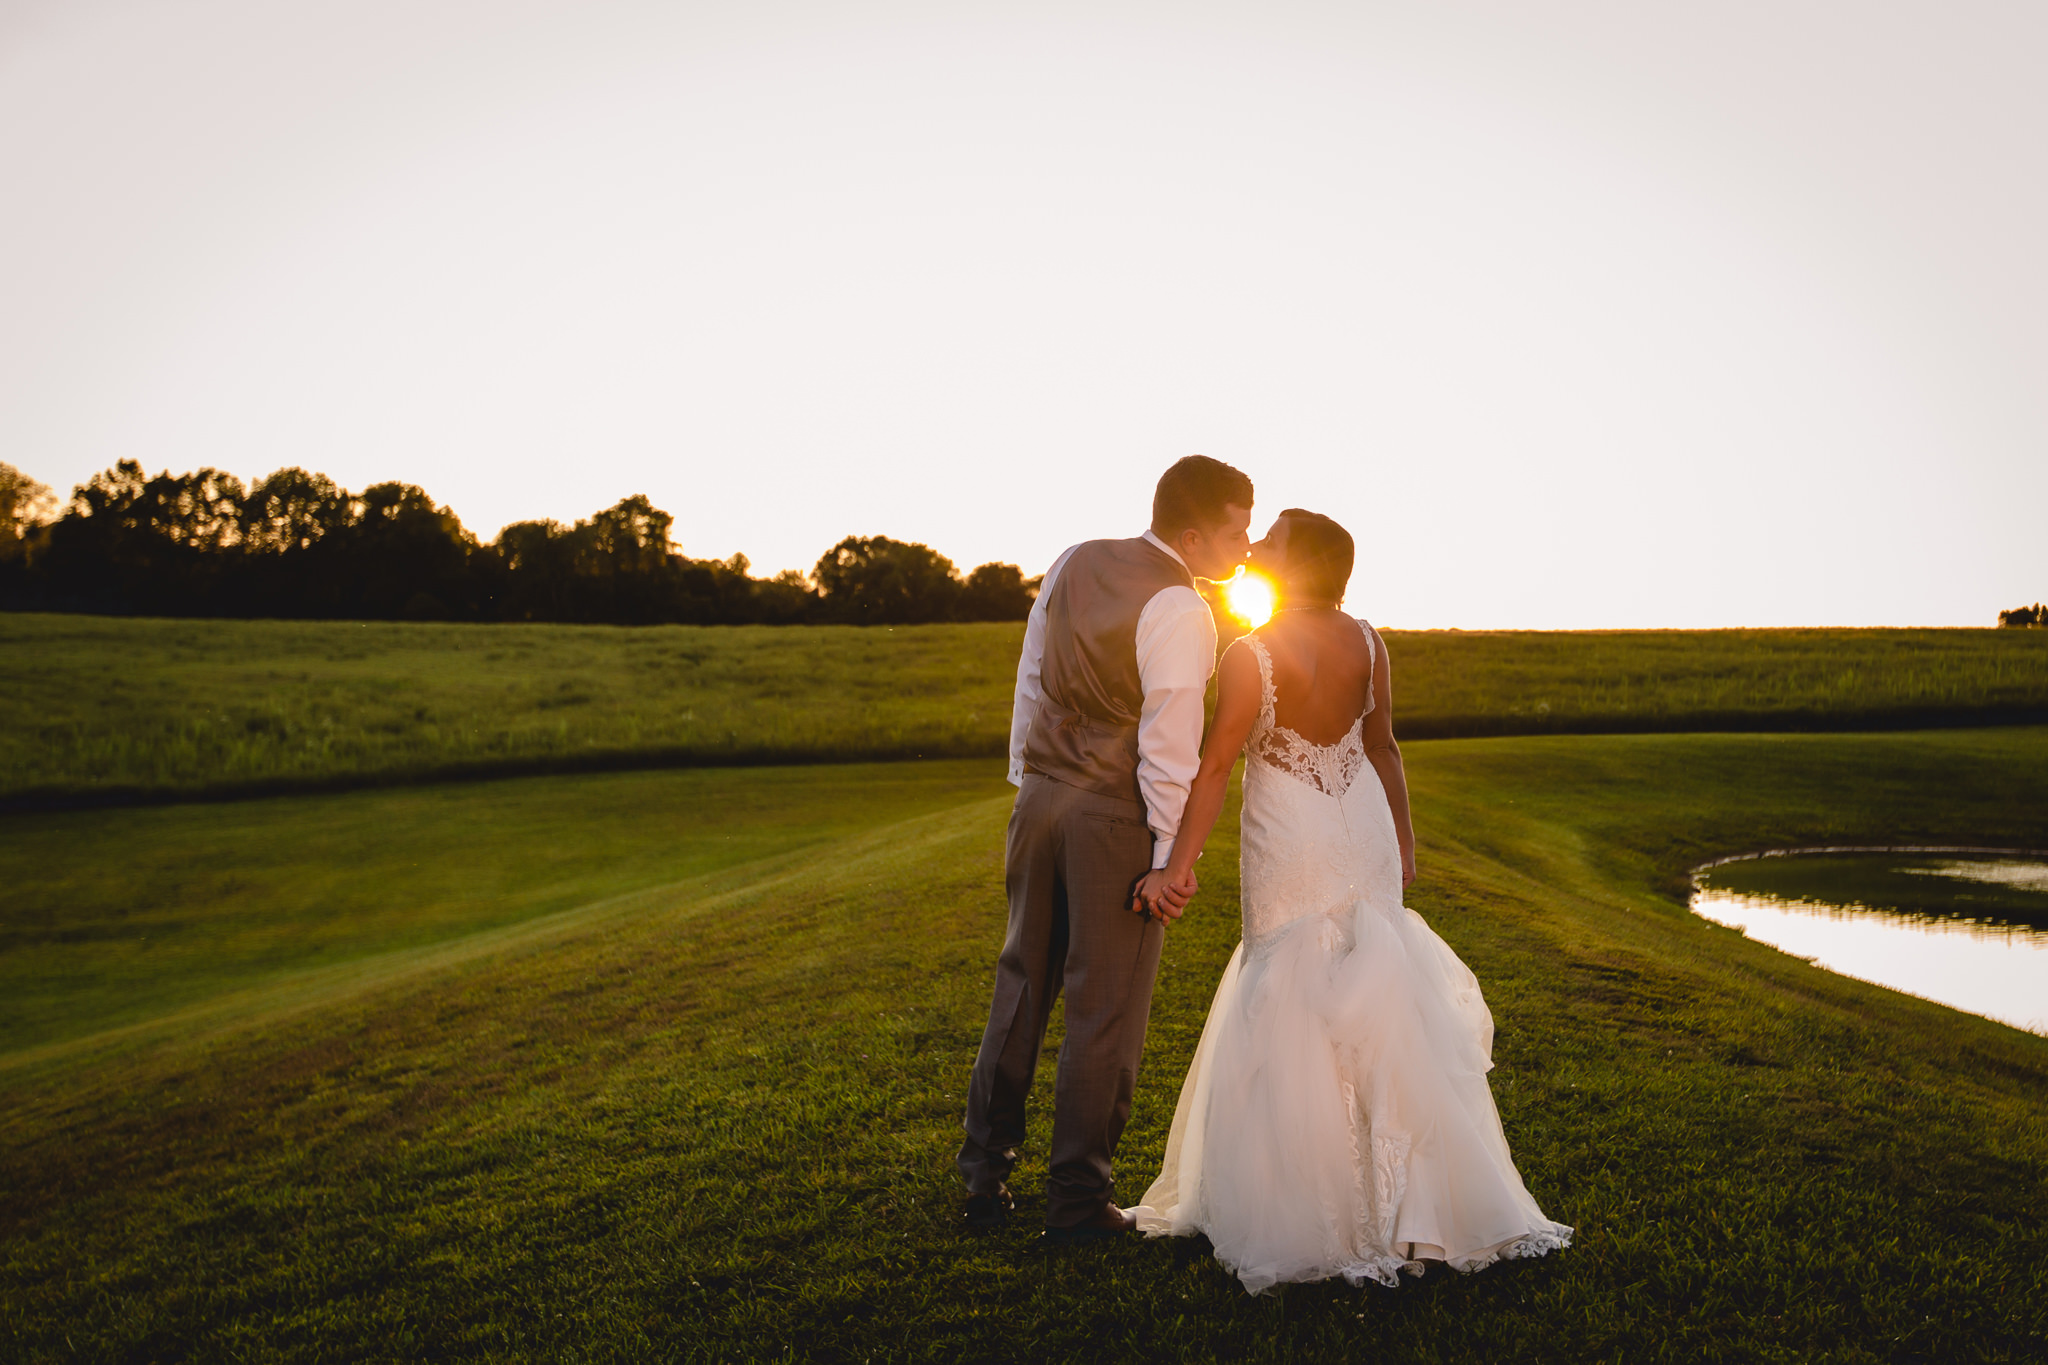 Sun sets as the bride and groom kiss at their White Barn wedding